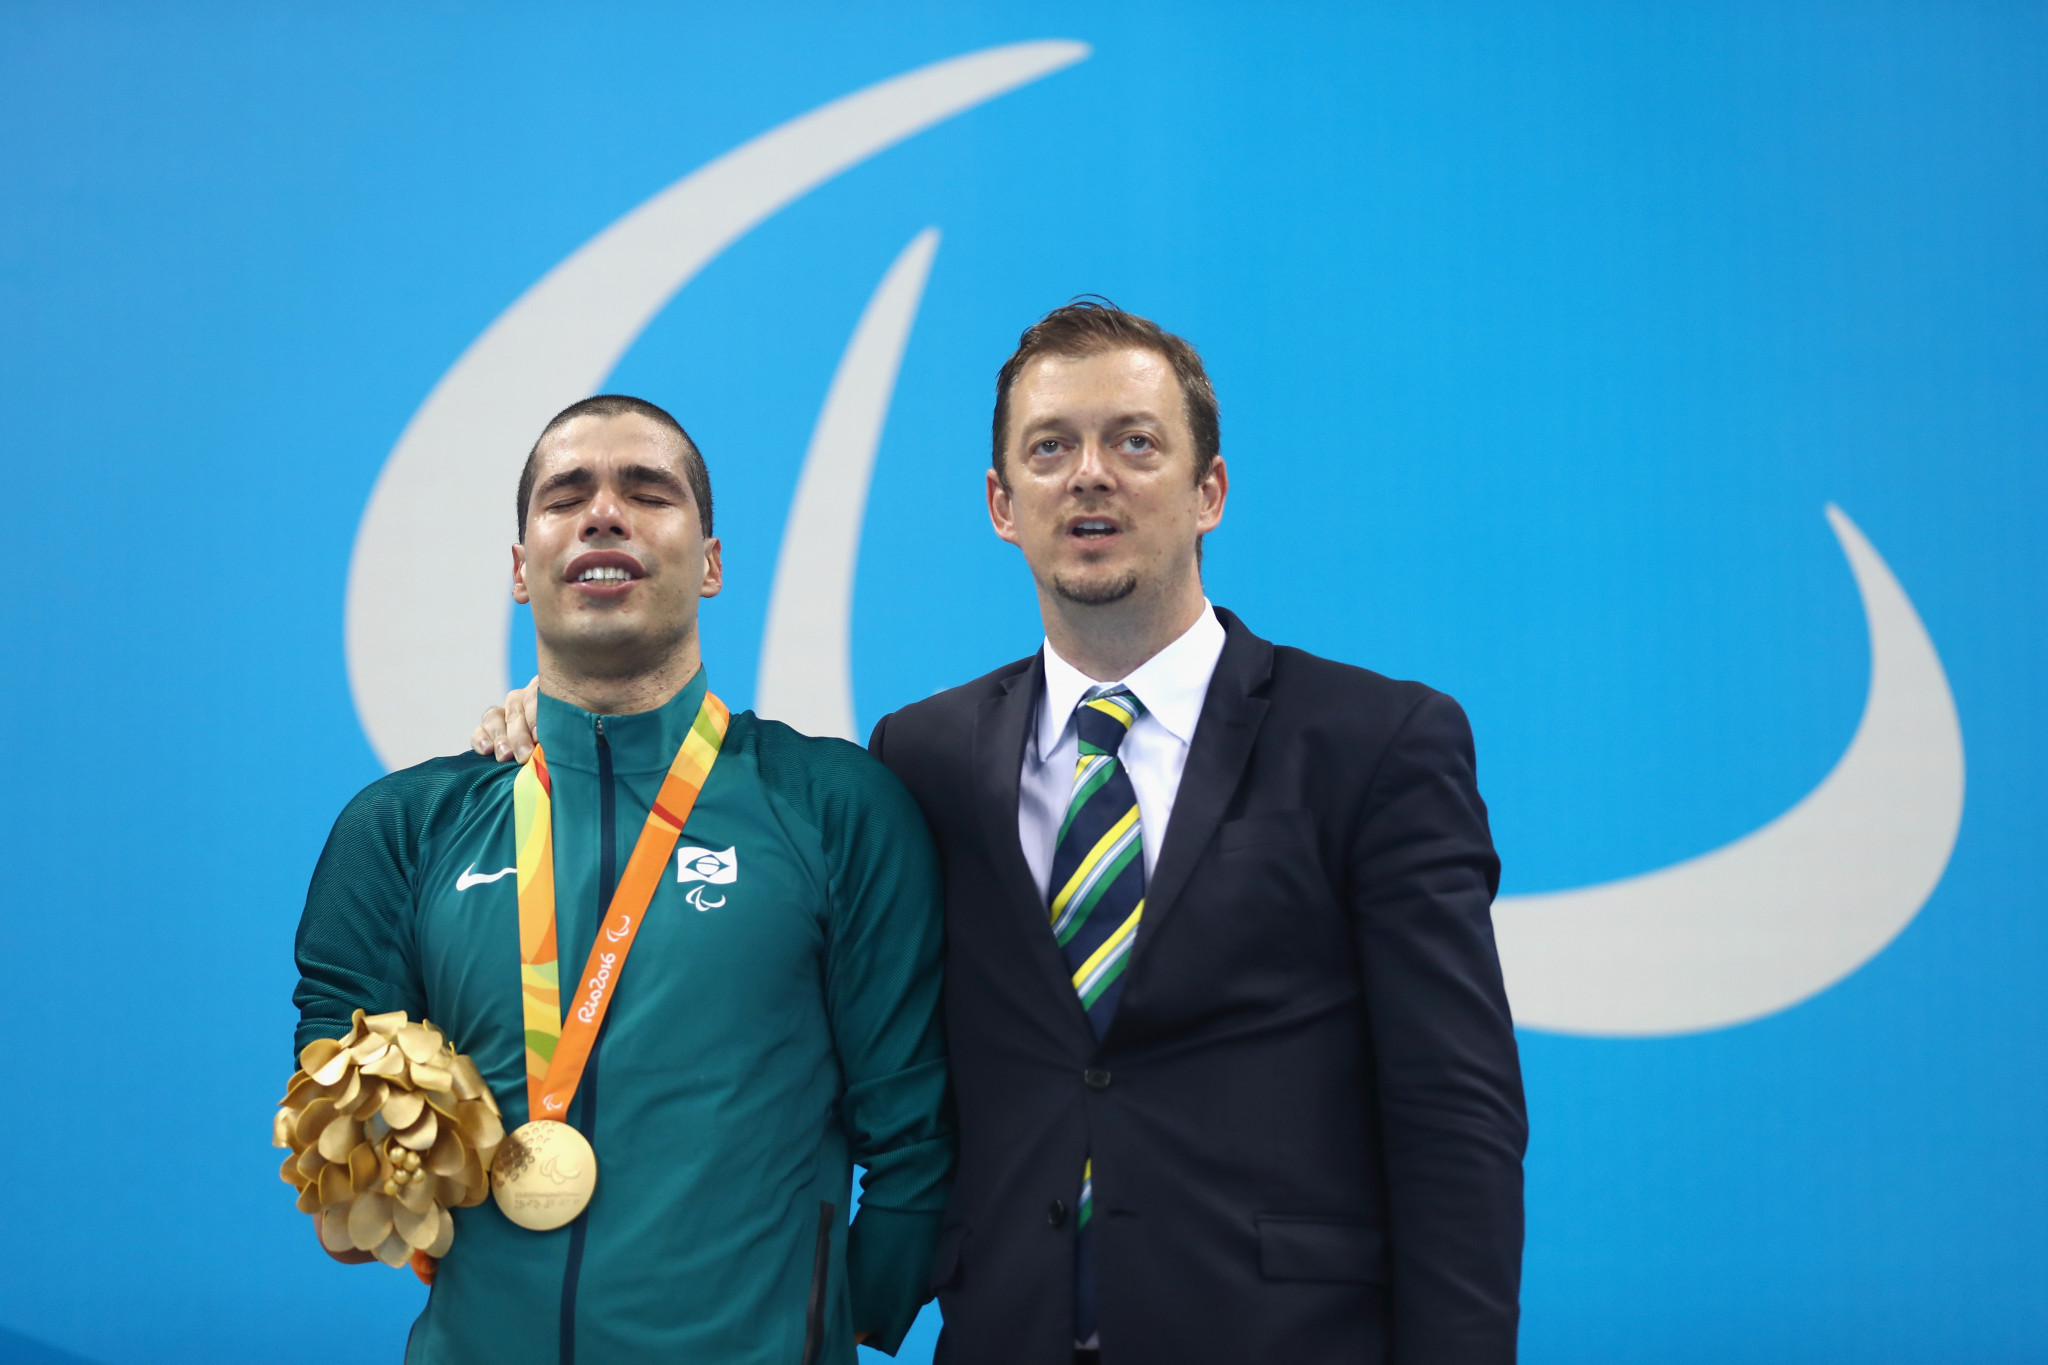 Brazil's Andrew Parsons, pictured here with his country's swimming star Daniel Dias at Rio 2016, is promising a better dialogue with IPC members if he is elected President ©Getty Images